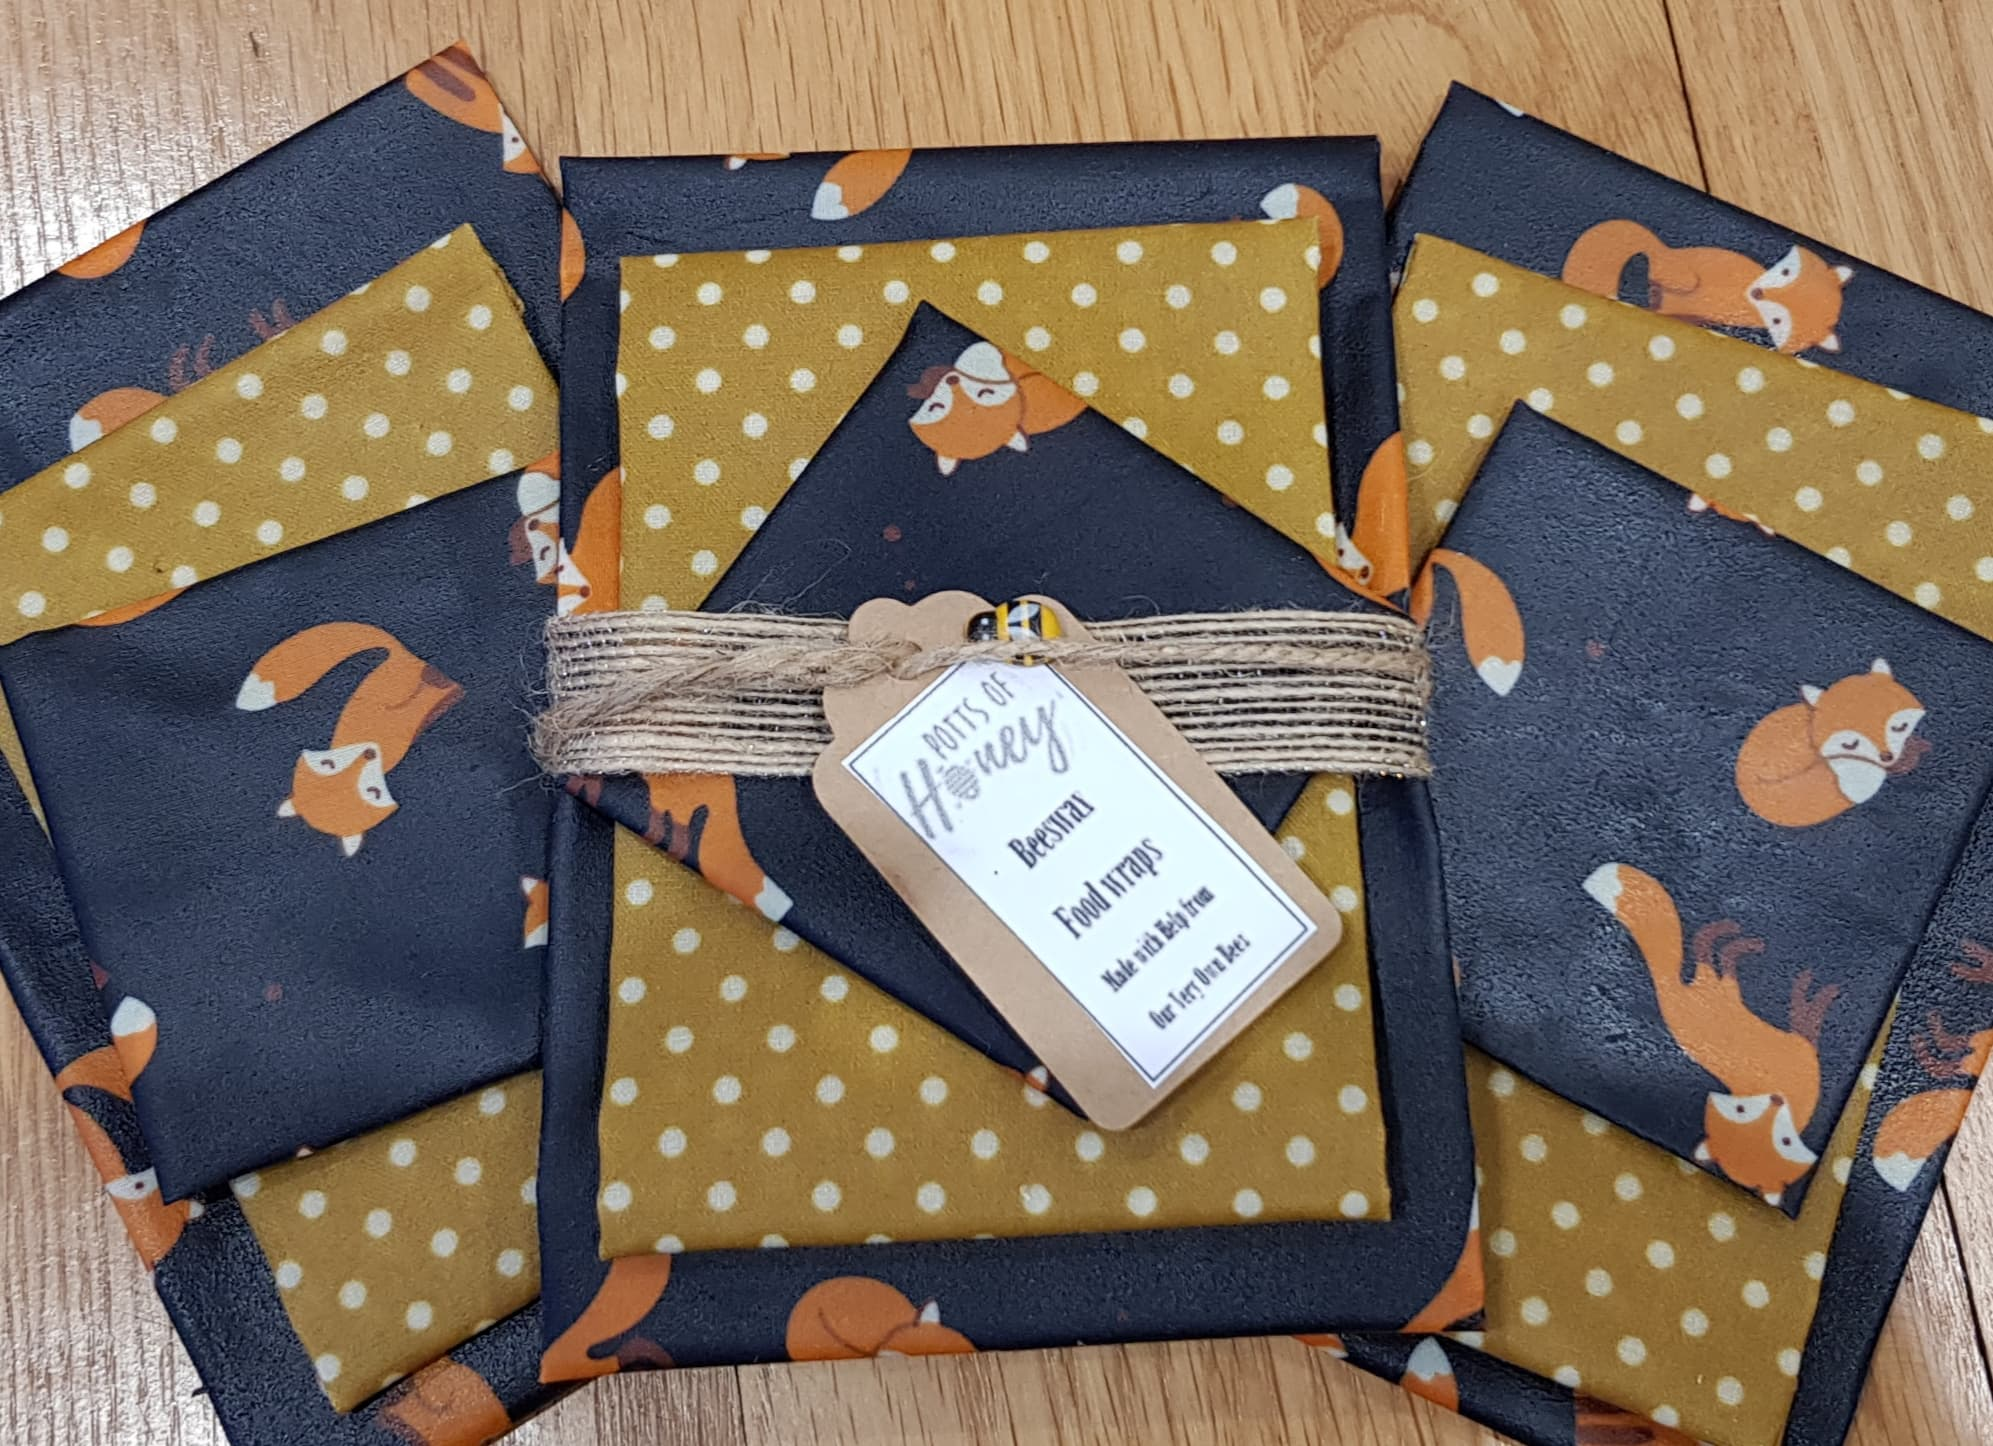 POH – Beeswax Food Wraps #5